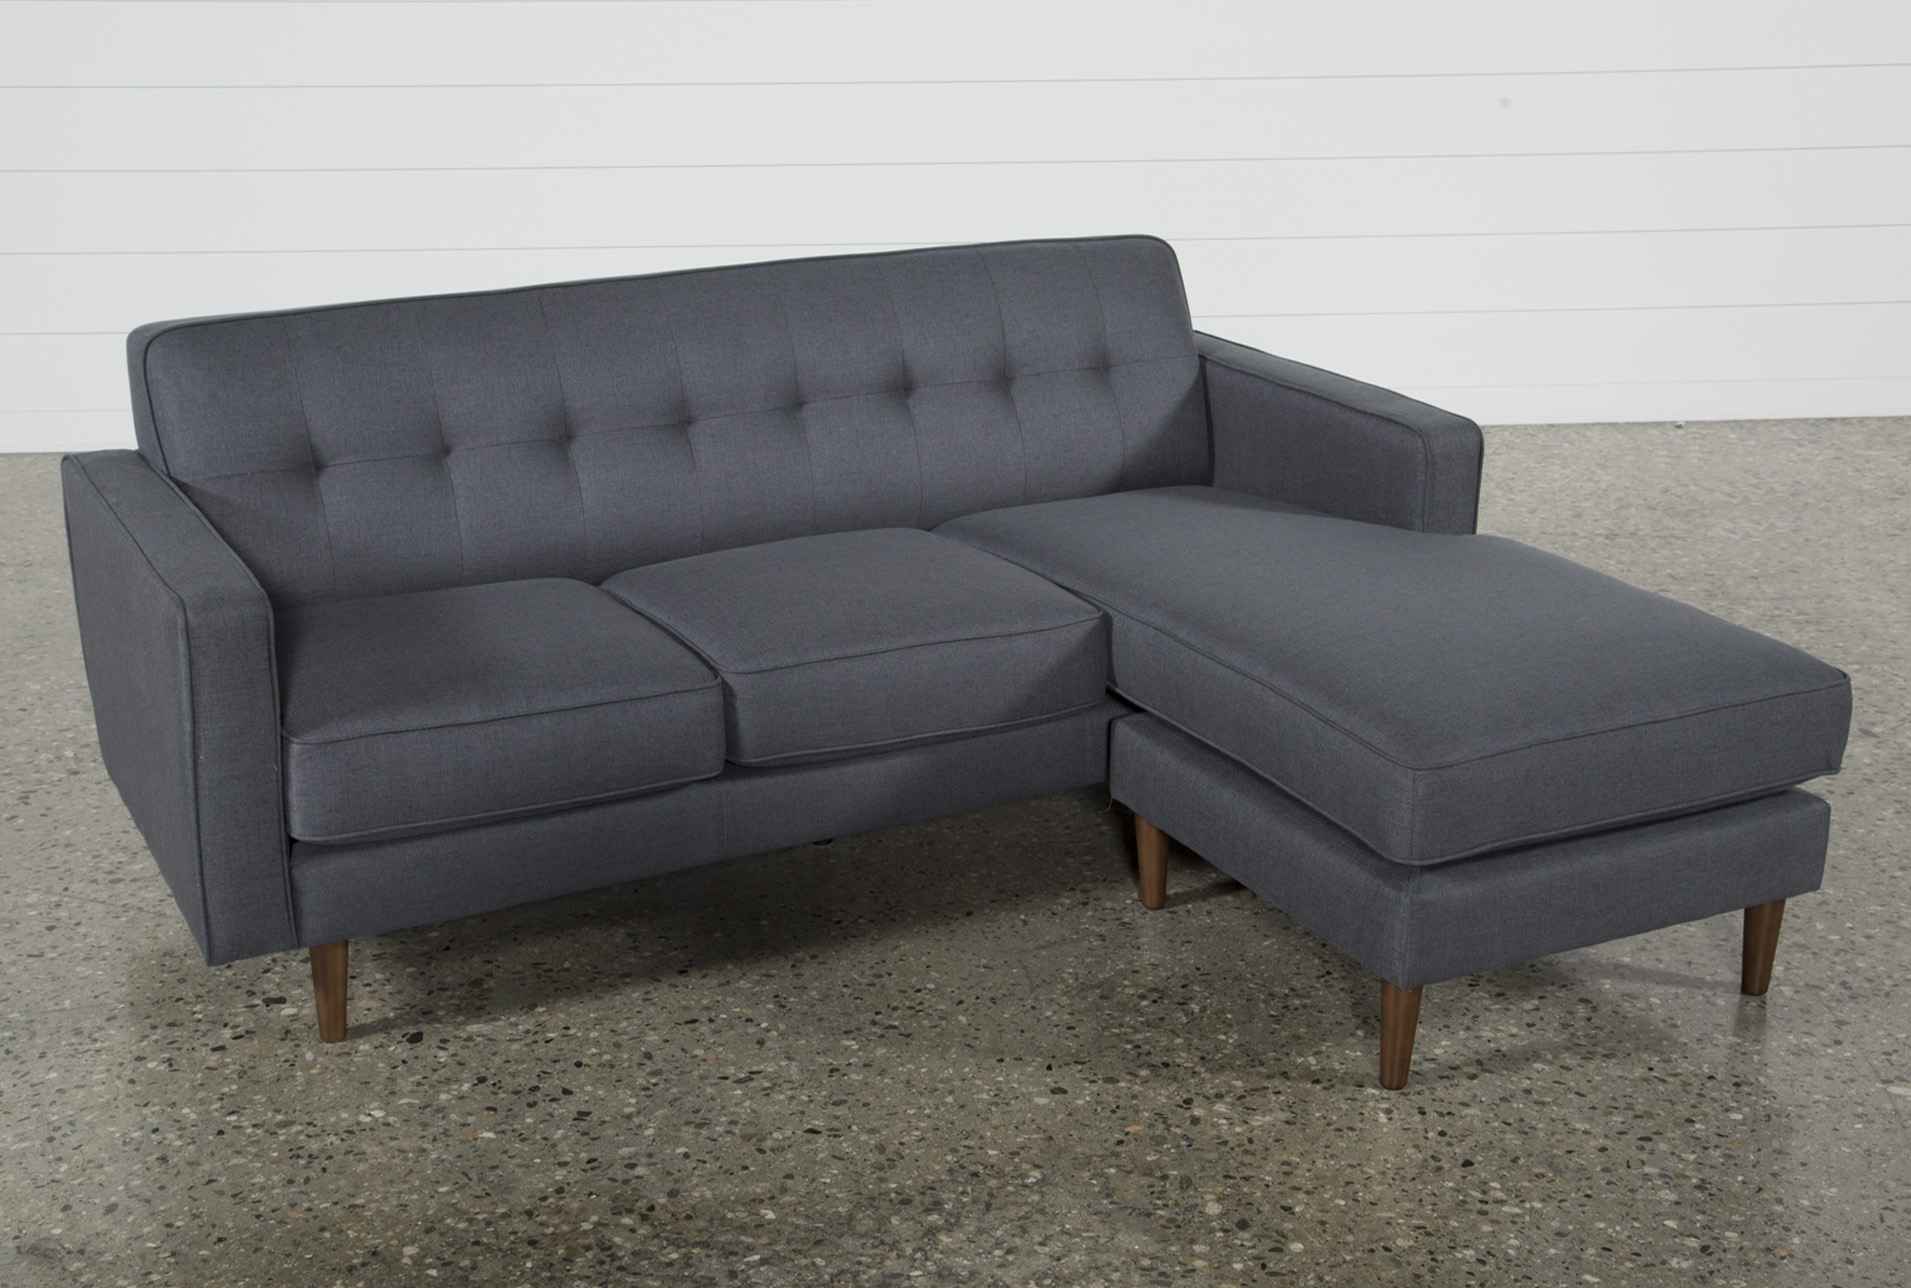 London Dark Grey Reversible Sofa Chaise | Products | Pinterest throughout London Optical Reversible Sofa Chaise Sectionals (Image 13 of 30)